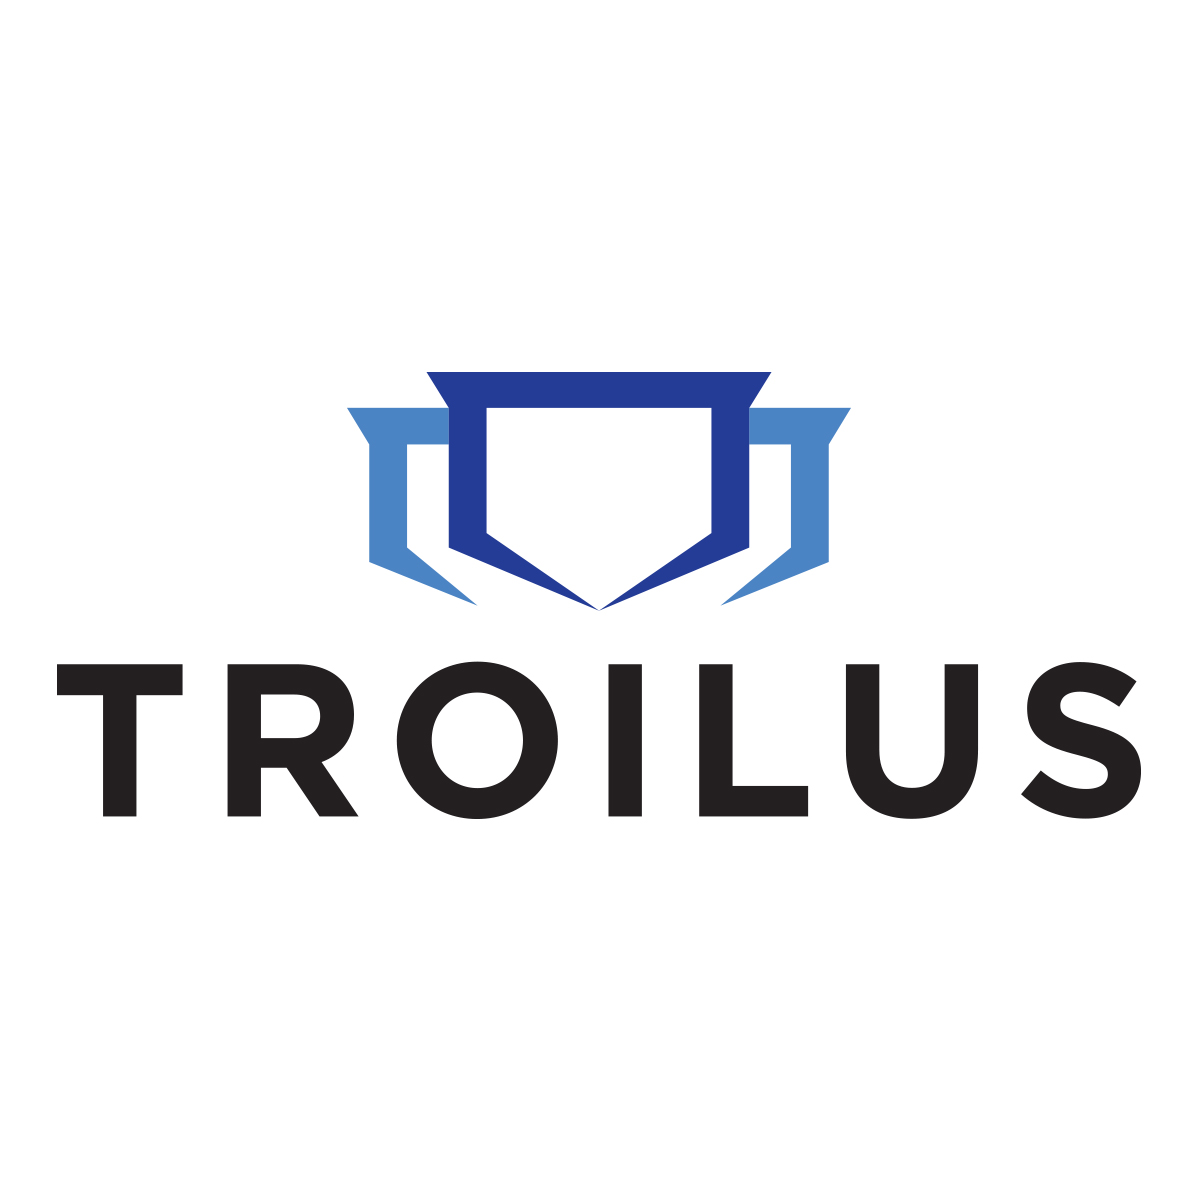 Troilus Gold makes $12m share offering